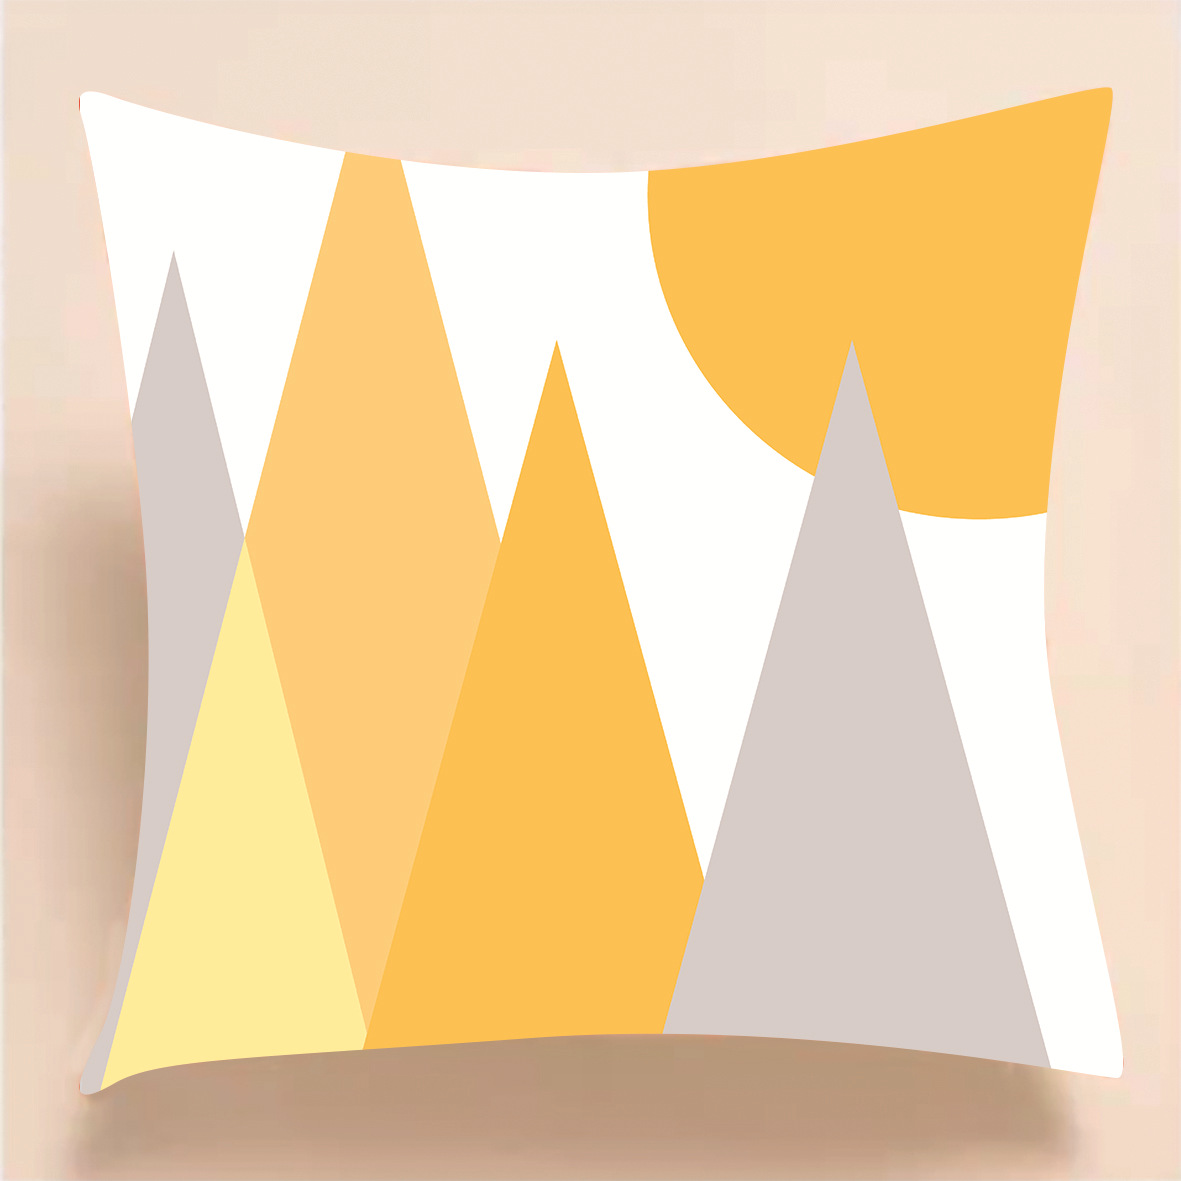 Geometric Style with Message Print Pillowcase for Inspiring Design